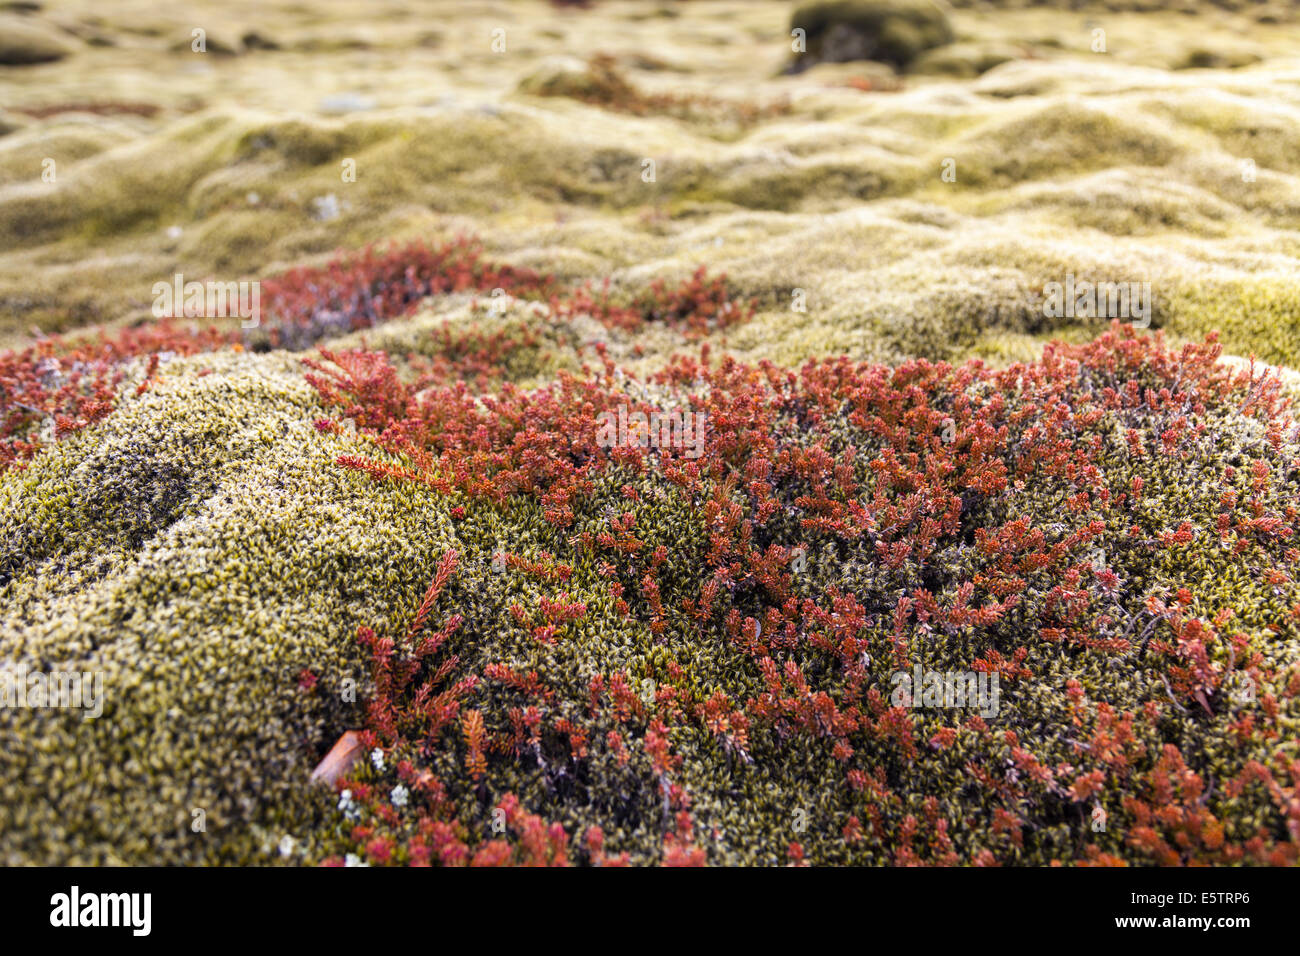 Close-up of lush green and red moss covering volcanic  rocks in a lava field in Iceland Stock Photo